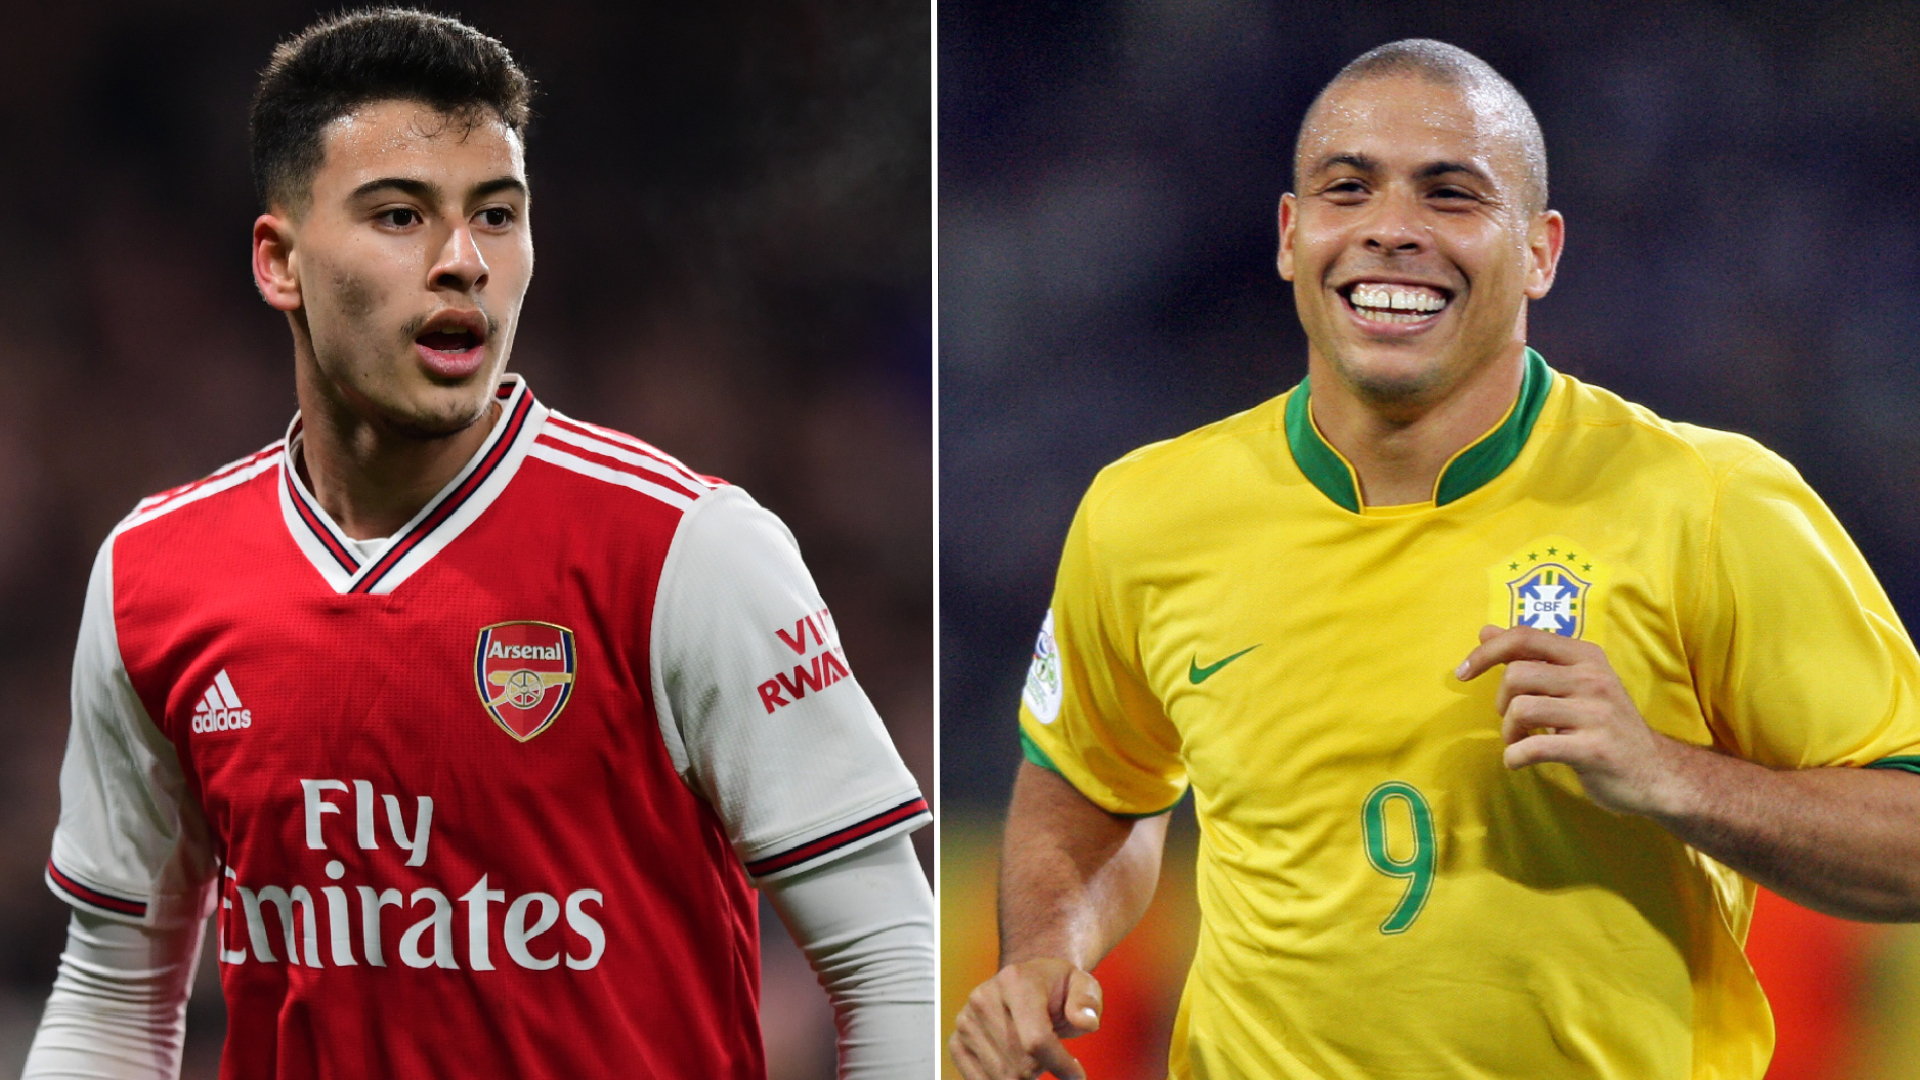 'Martinelli reminds me of Ronaldo' - Ronaldinho 'very excited' about new Arsenal sensation